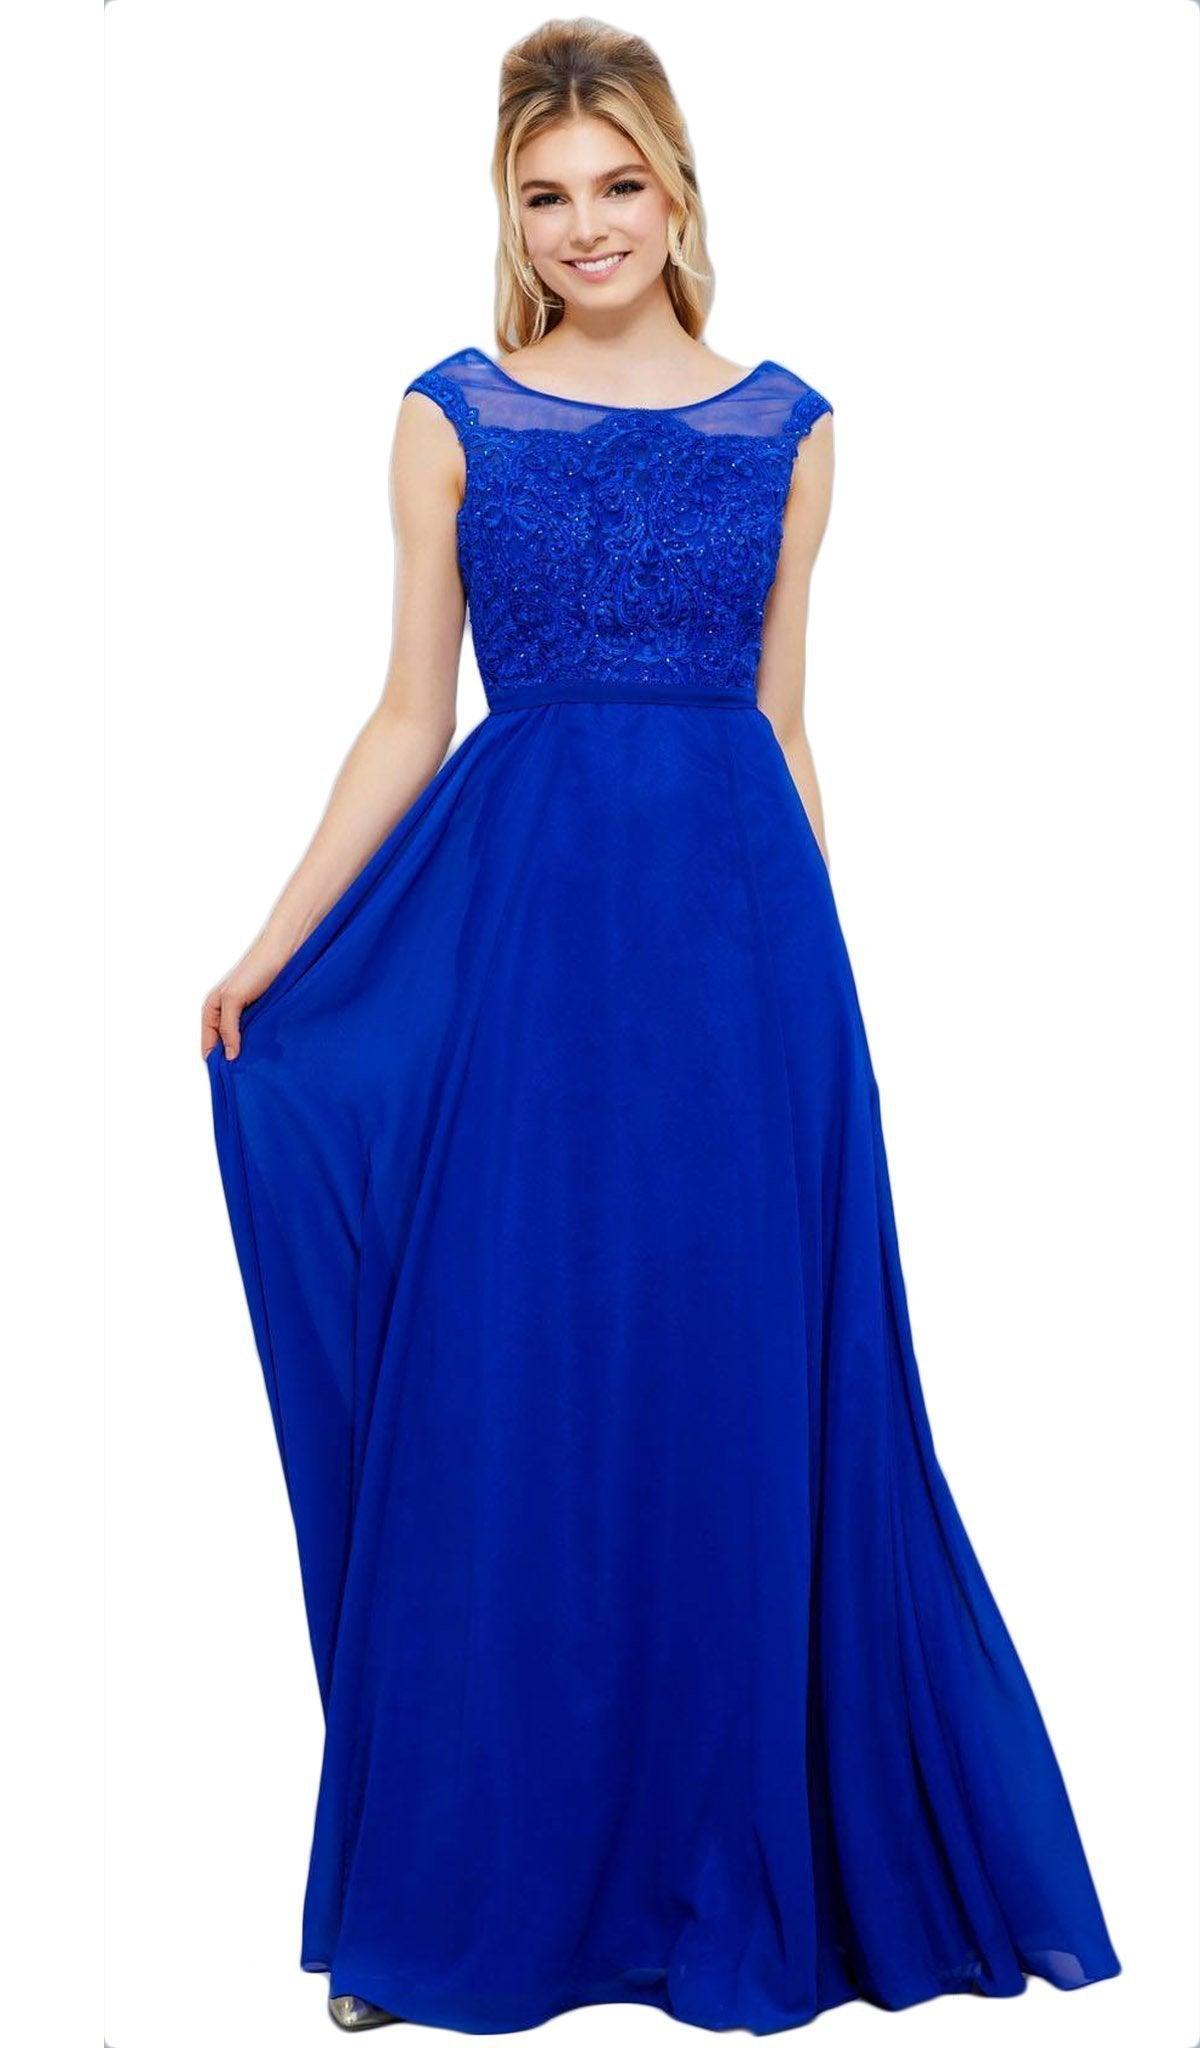 Nox Anabel - Lace Chiffon A-Line Evening Gown 8314SC